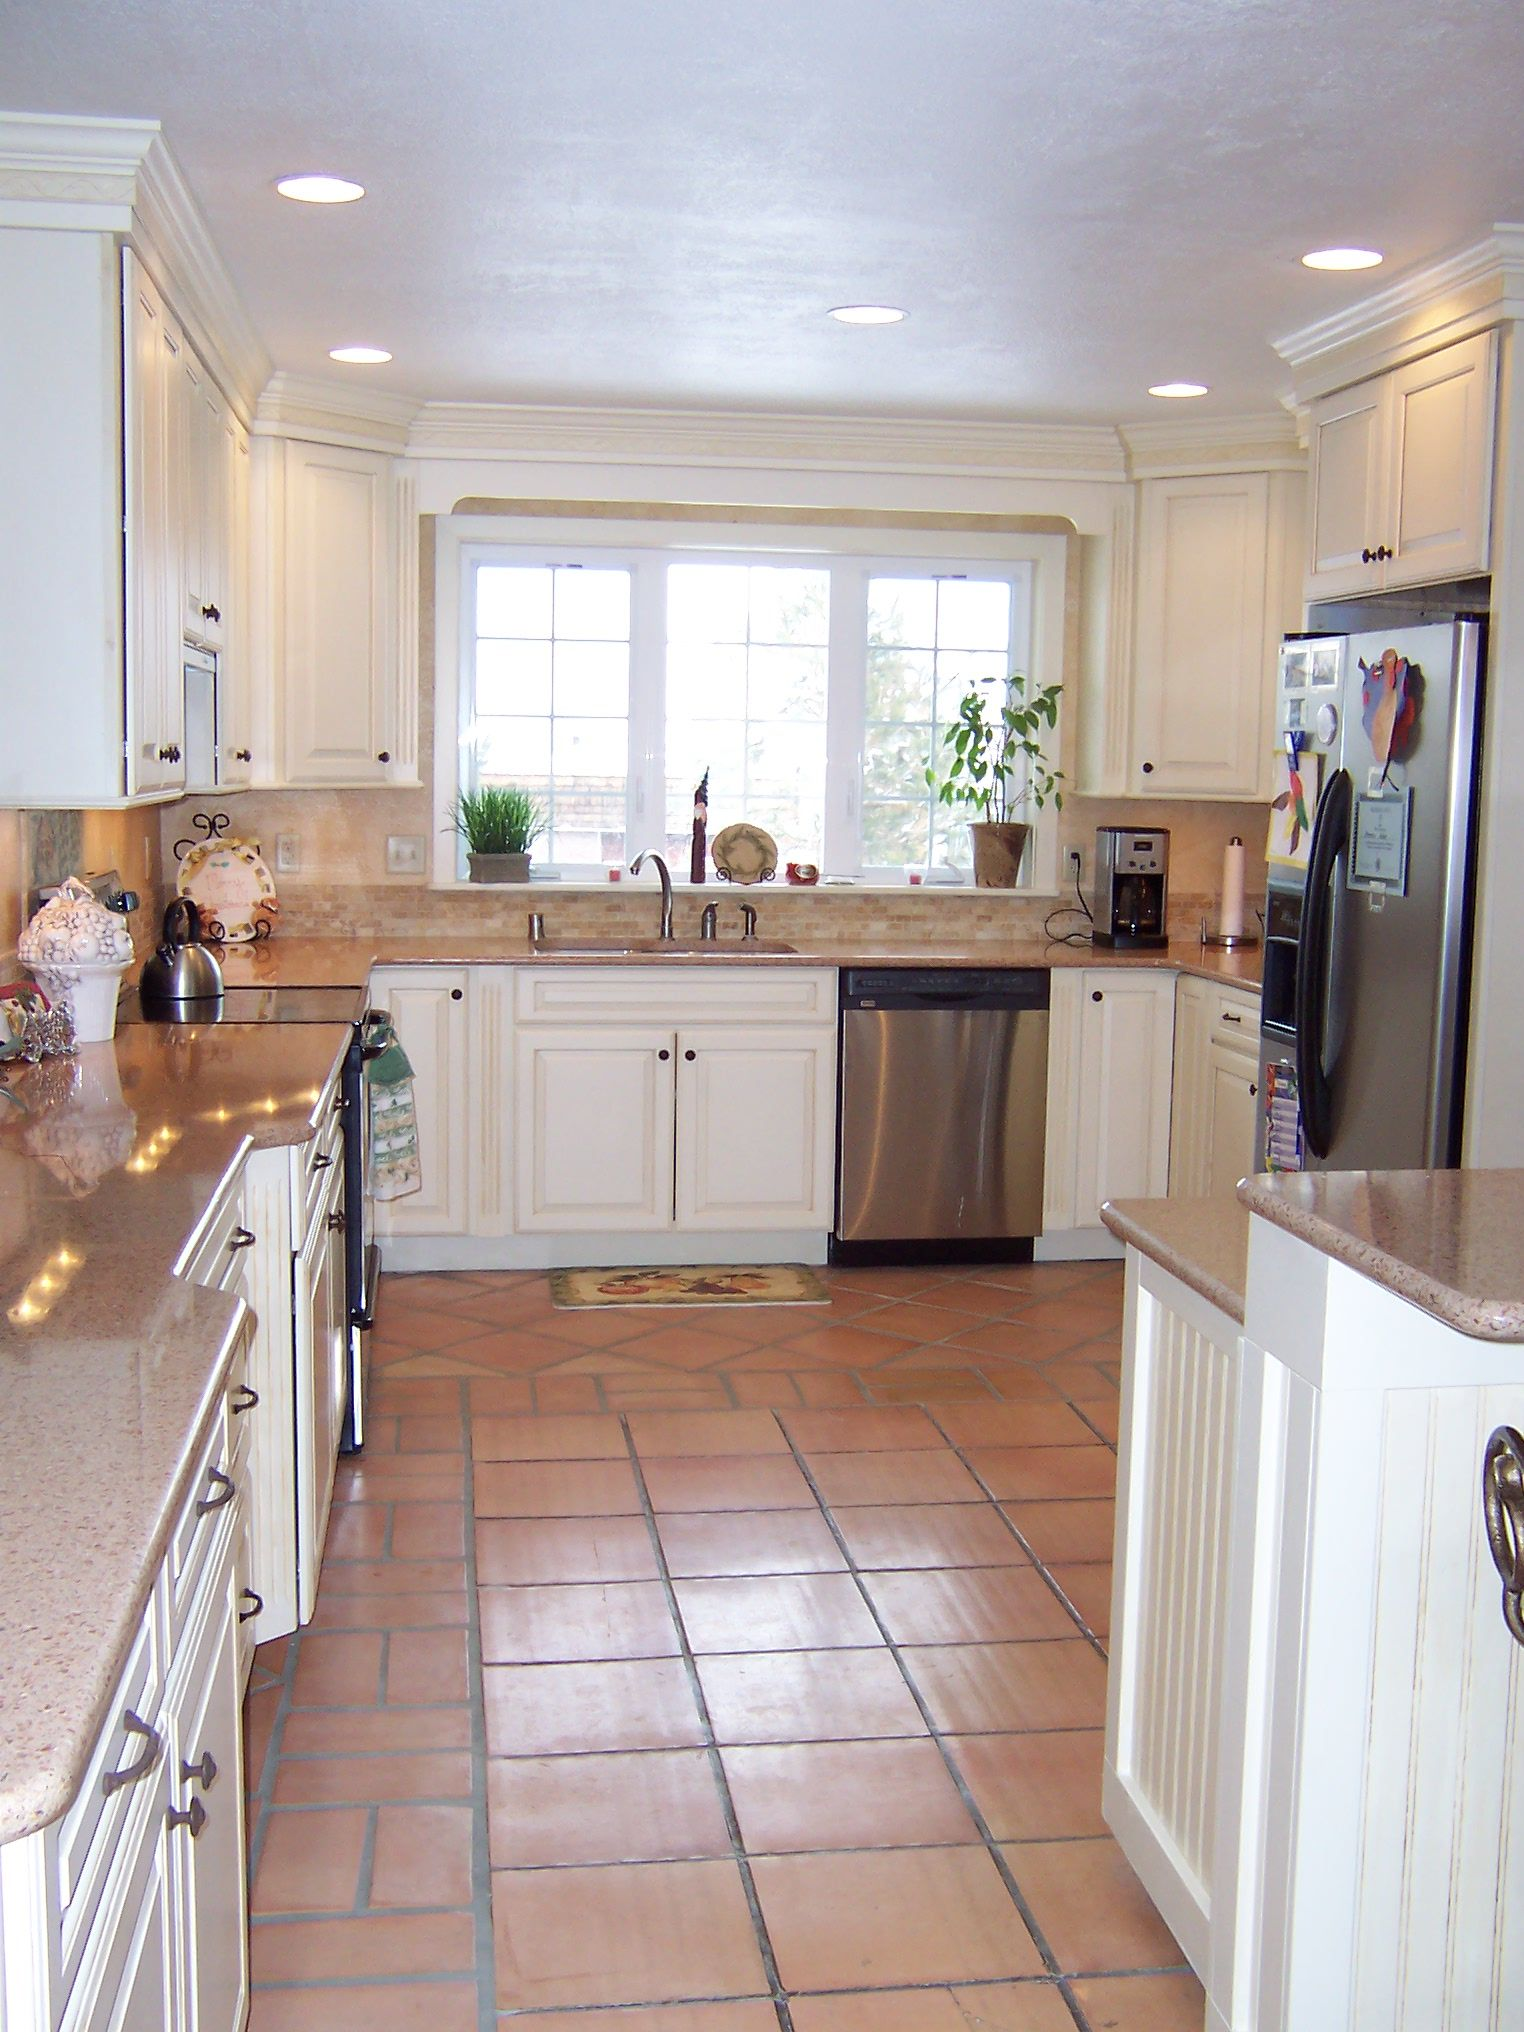 White Floor Tile Kitchen Traditional Saltillo Terra Cotta Floor Tile In A Beautiful White